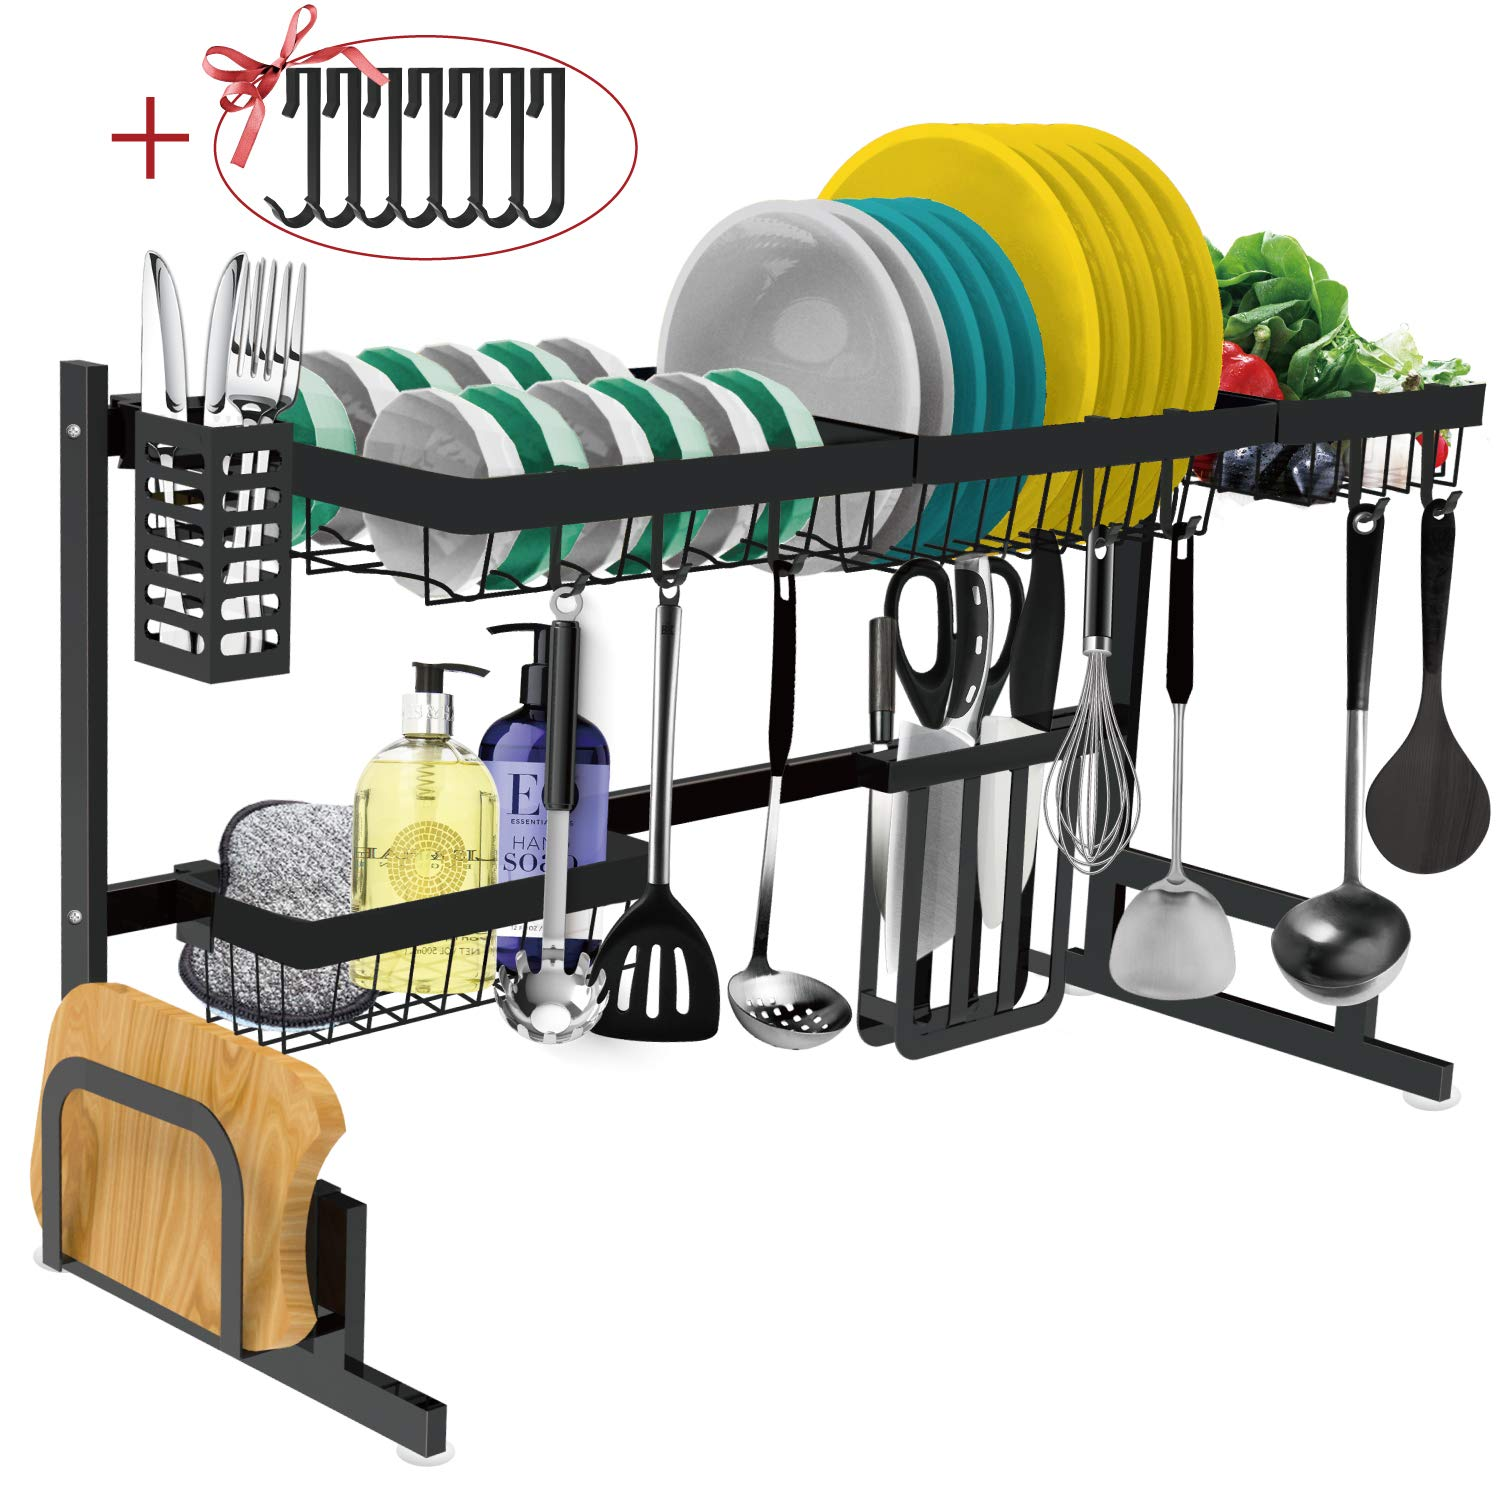 The Best over the sink dish rack - Our pick